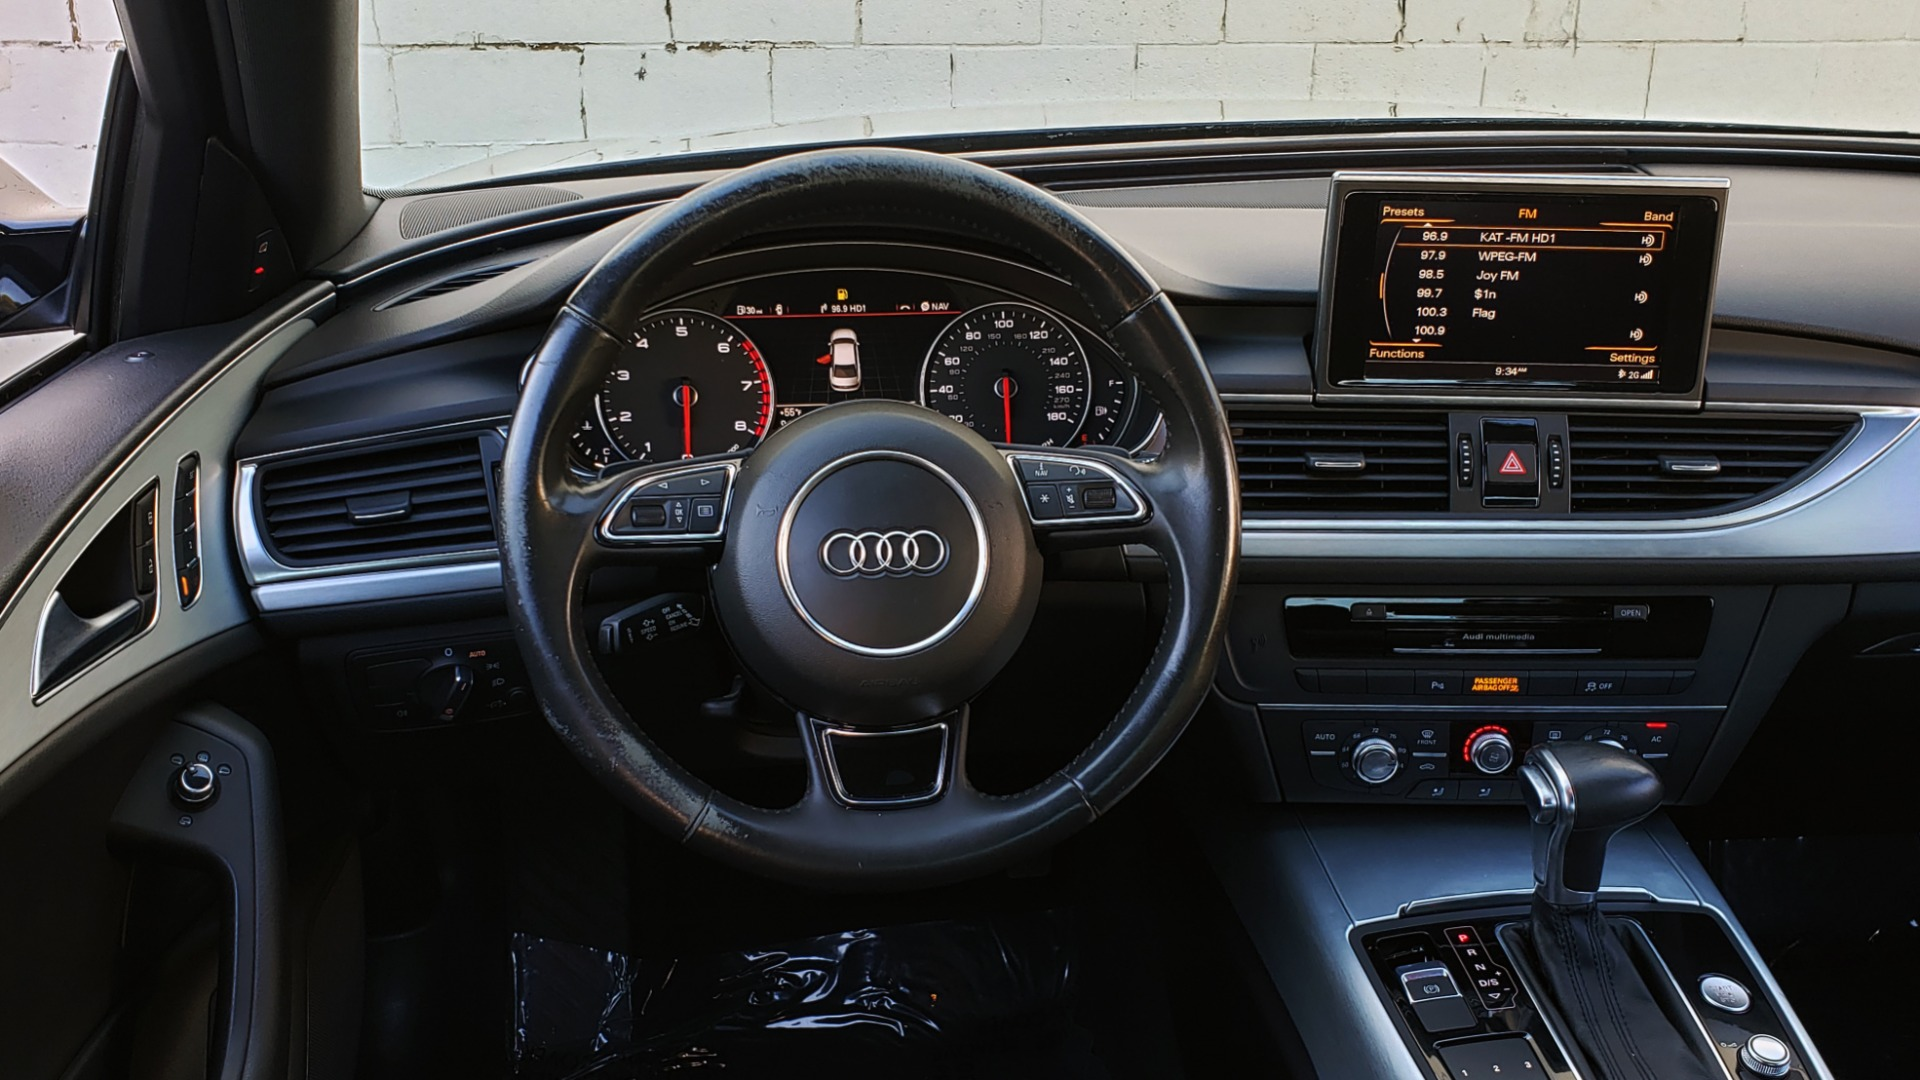 Used 2012 Audi A6 2.0T PREMIUM PLUS / NAV / SNRF / CVT TRANS / REARVIEW for sale Sold at Formula Imports in Charlotte NC 28227 39